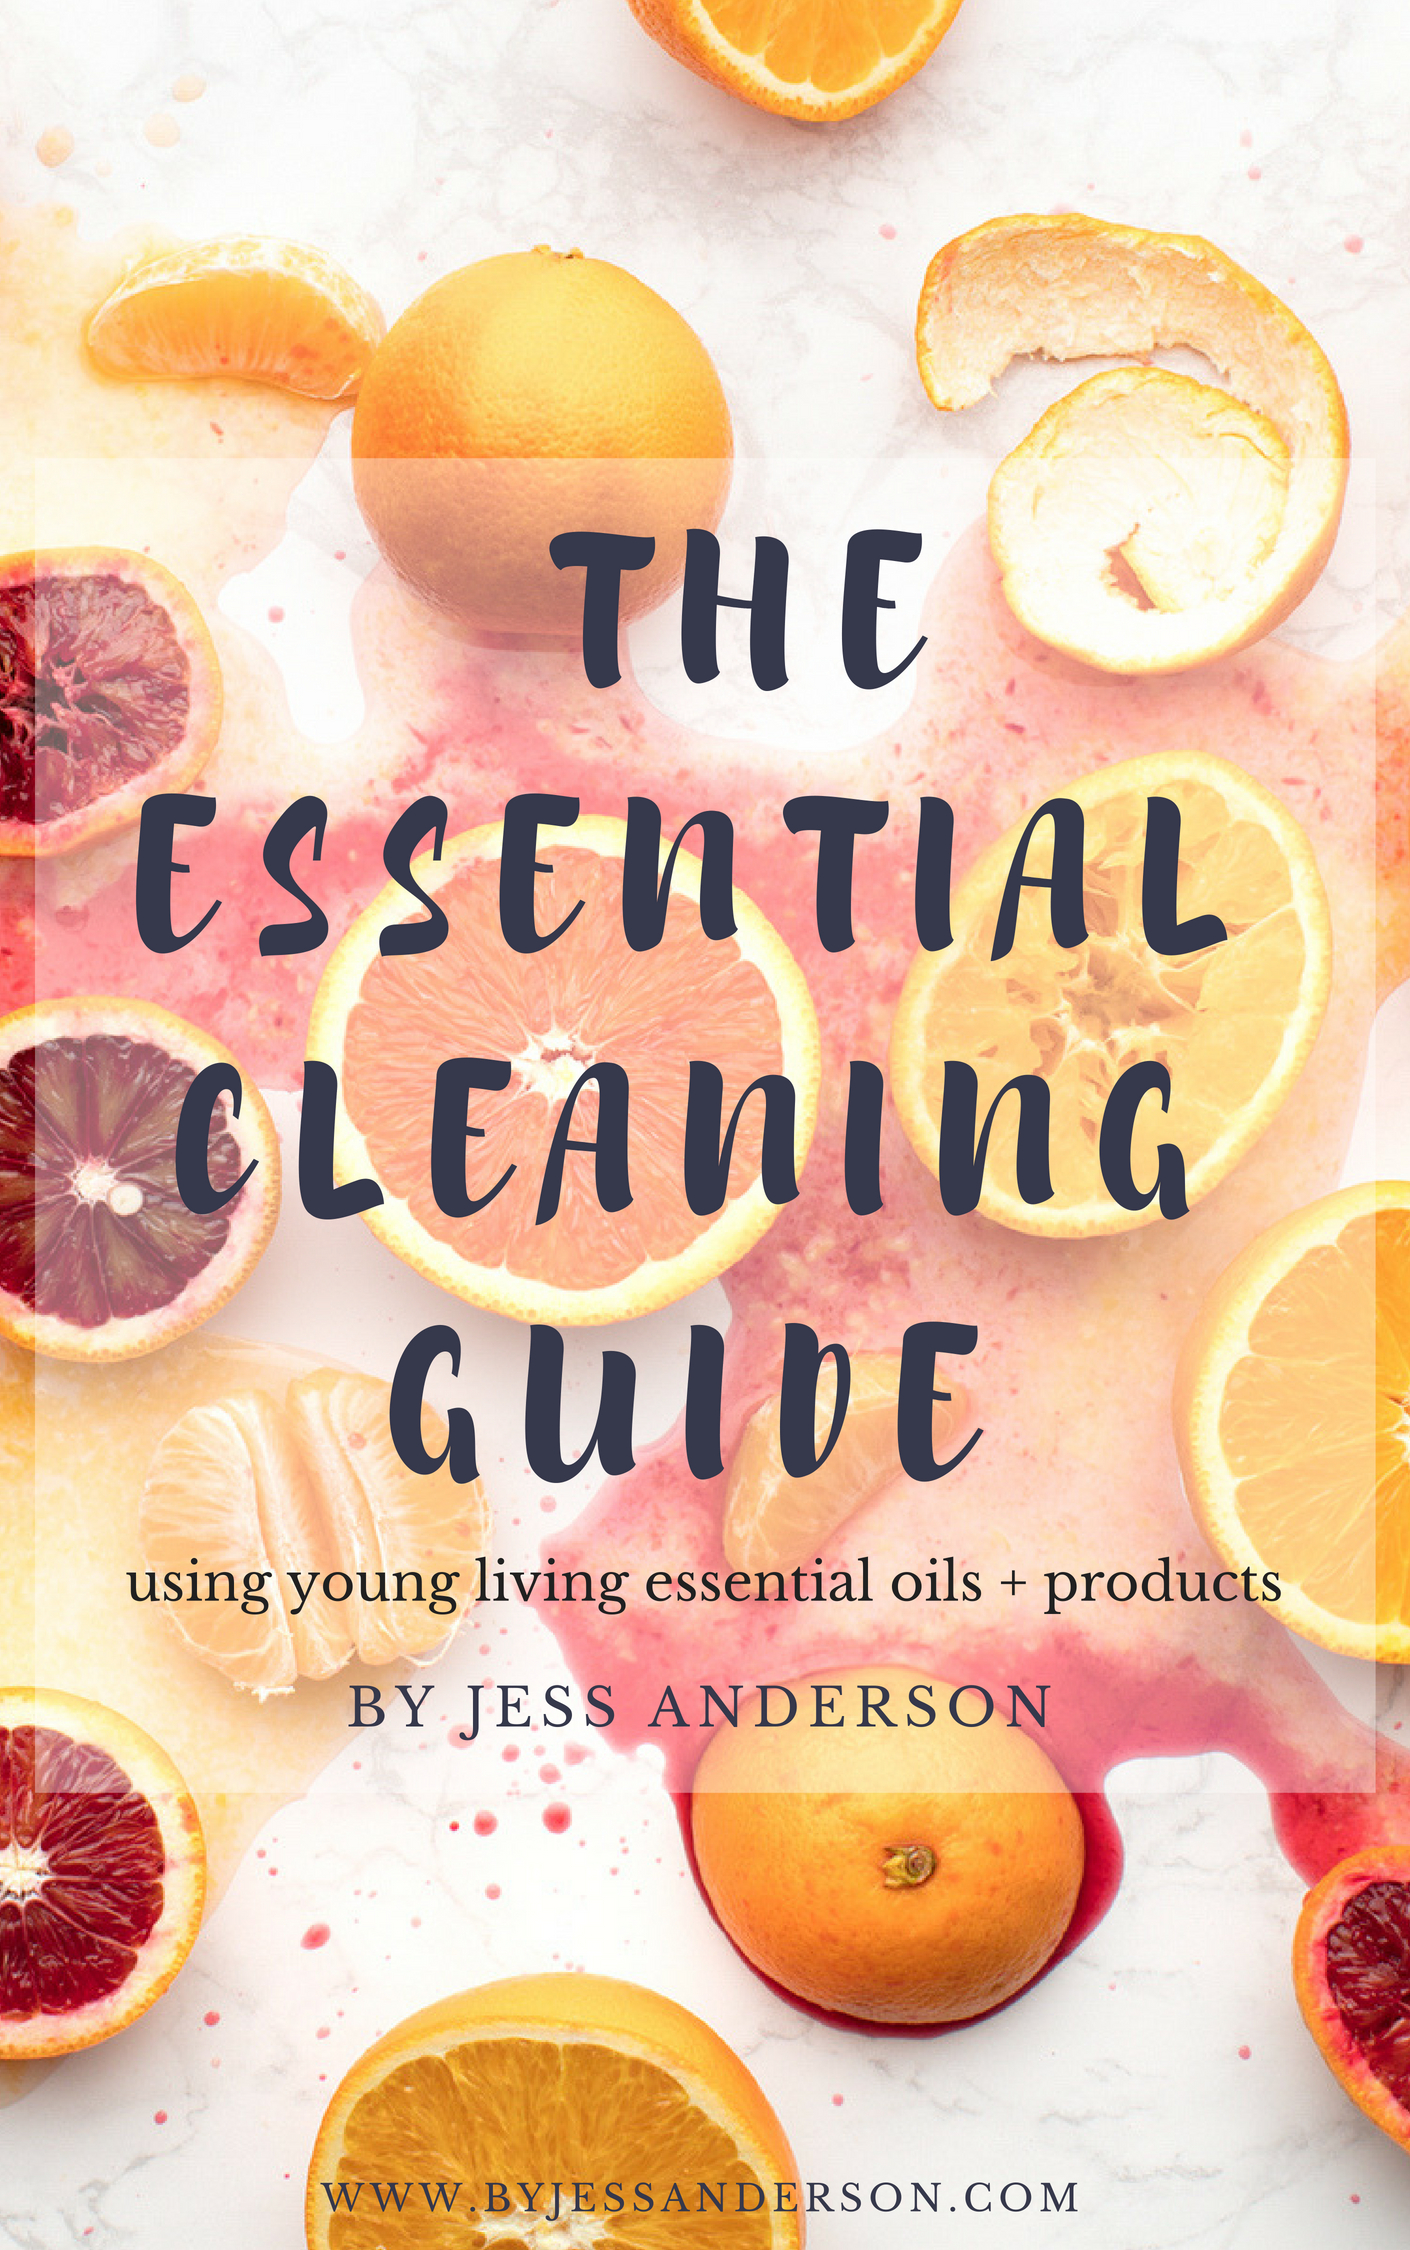 The Essential Cleaning Guide using Young Living essential oils and products